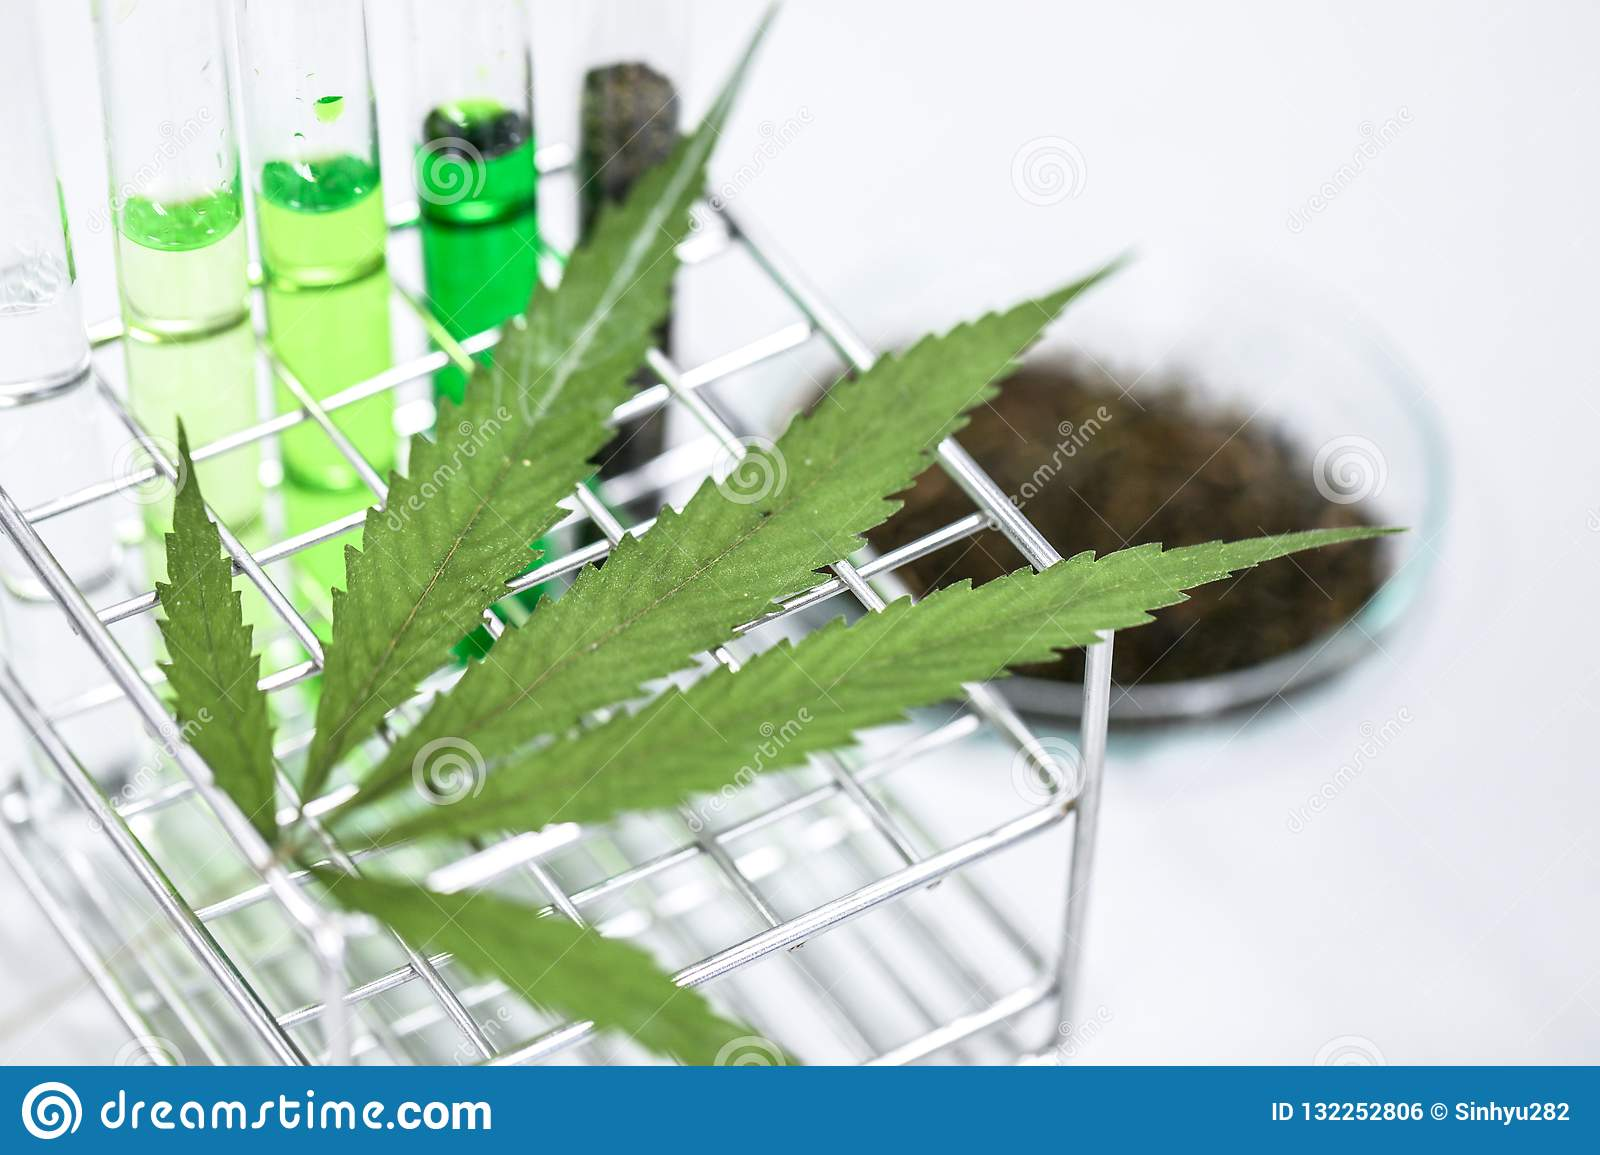 Cannabis Drugs, Analysis of Cannabis in laboratory.